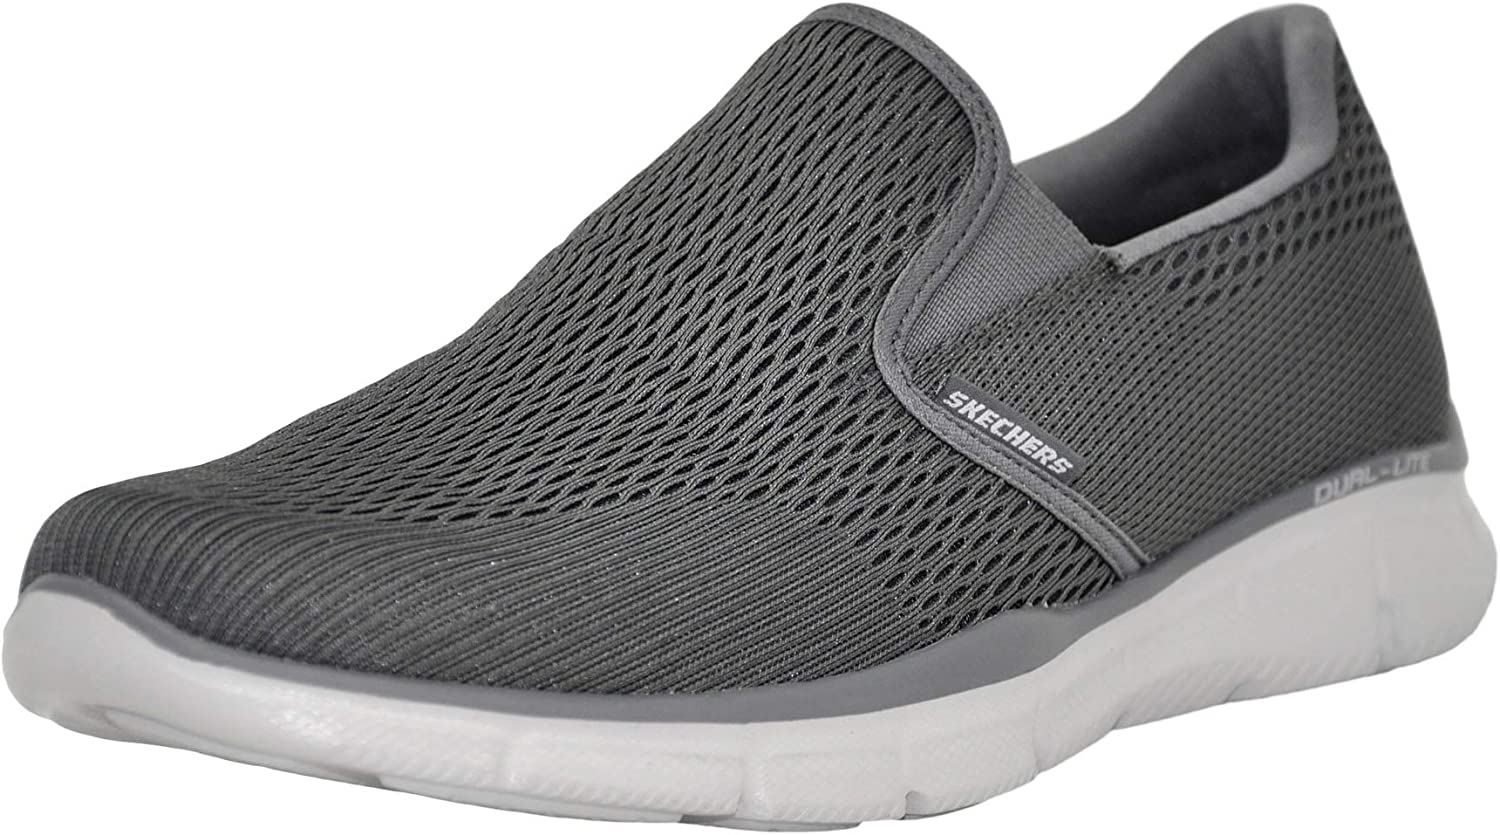 Skechers Men's Equalizer Double Play